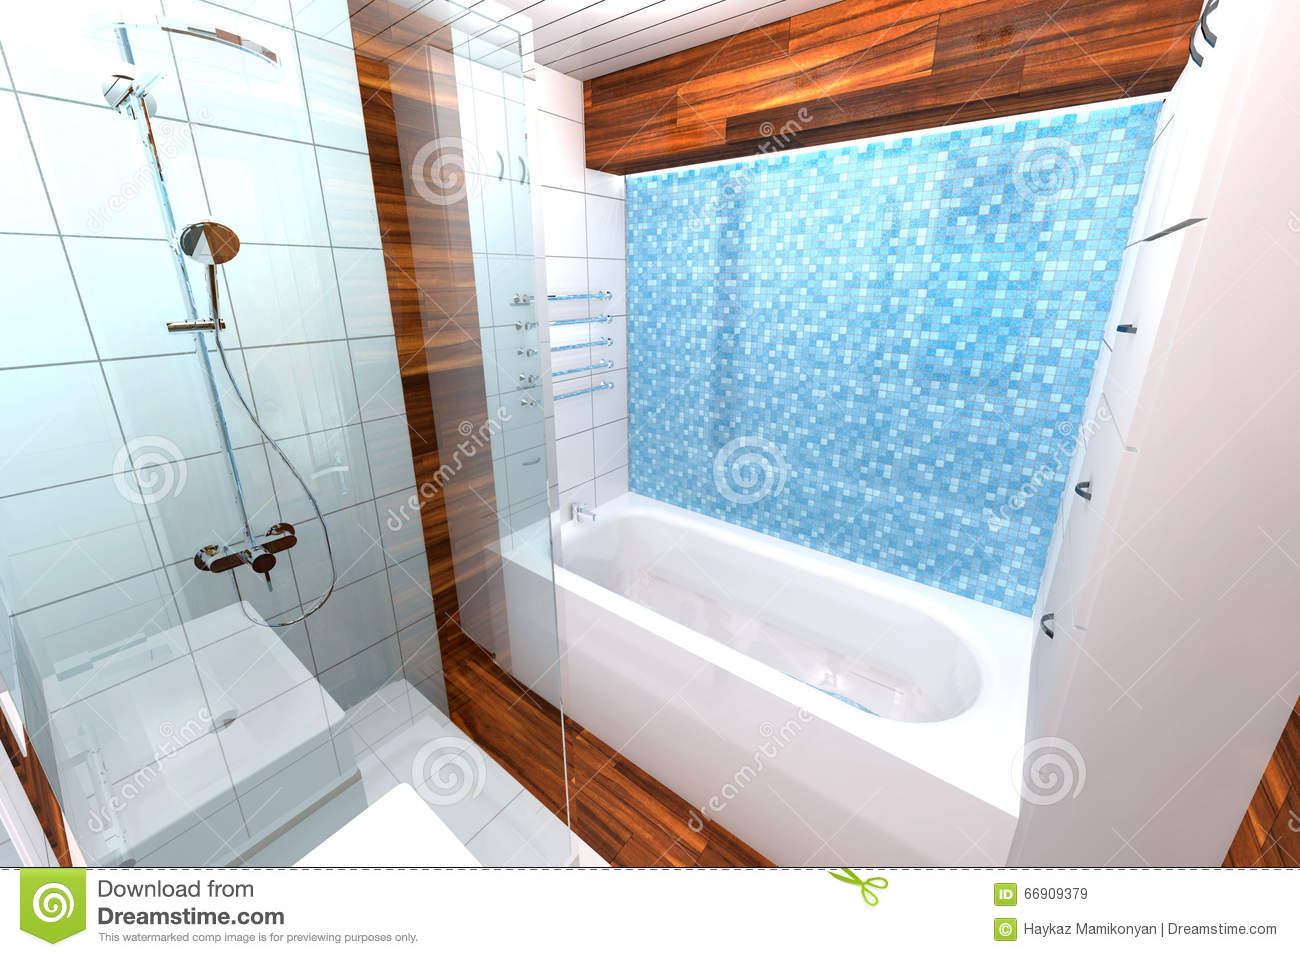 Bathroom Interior Design Stock Illustration Image 66909379